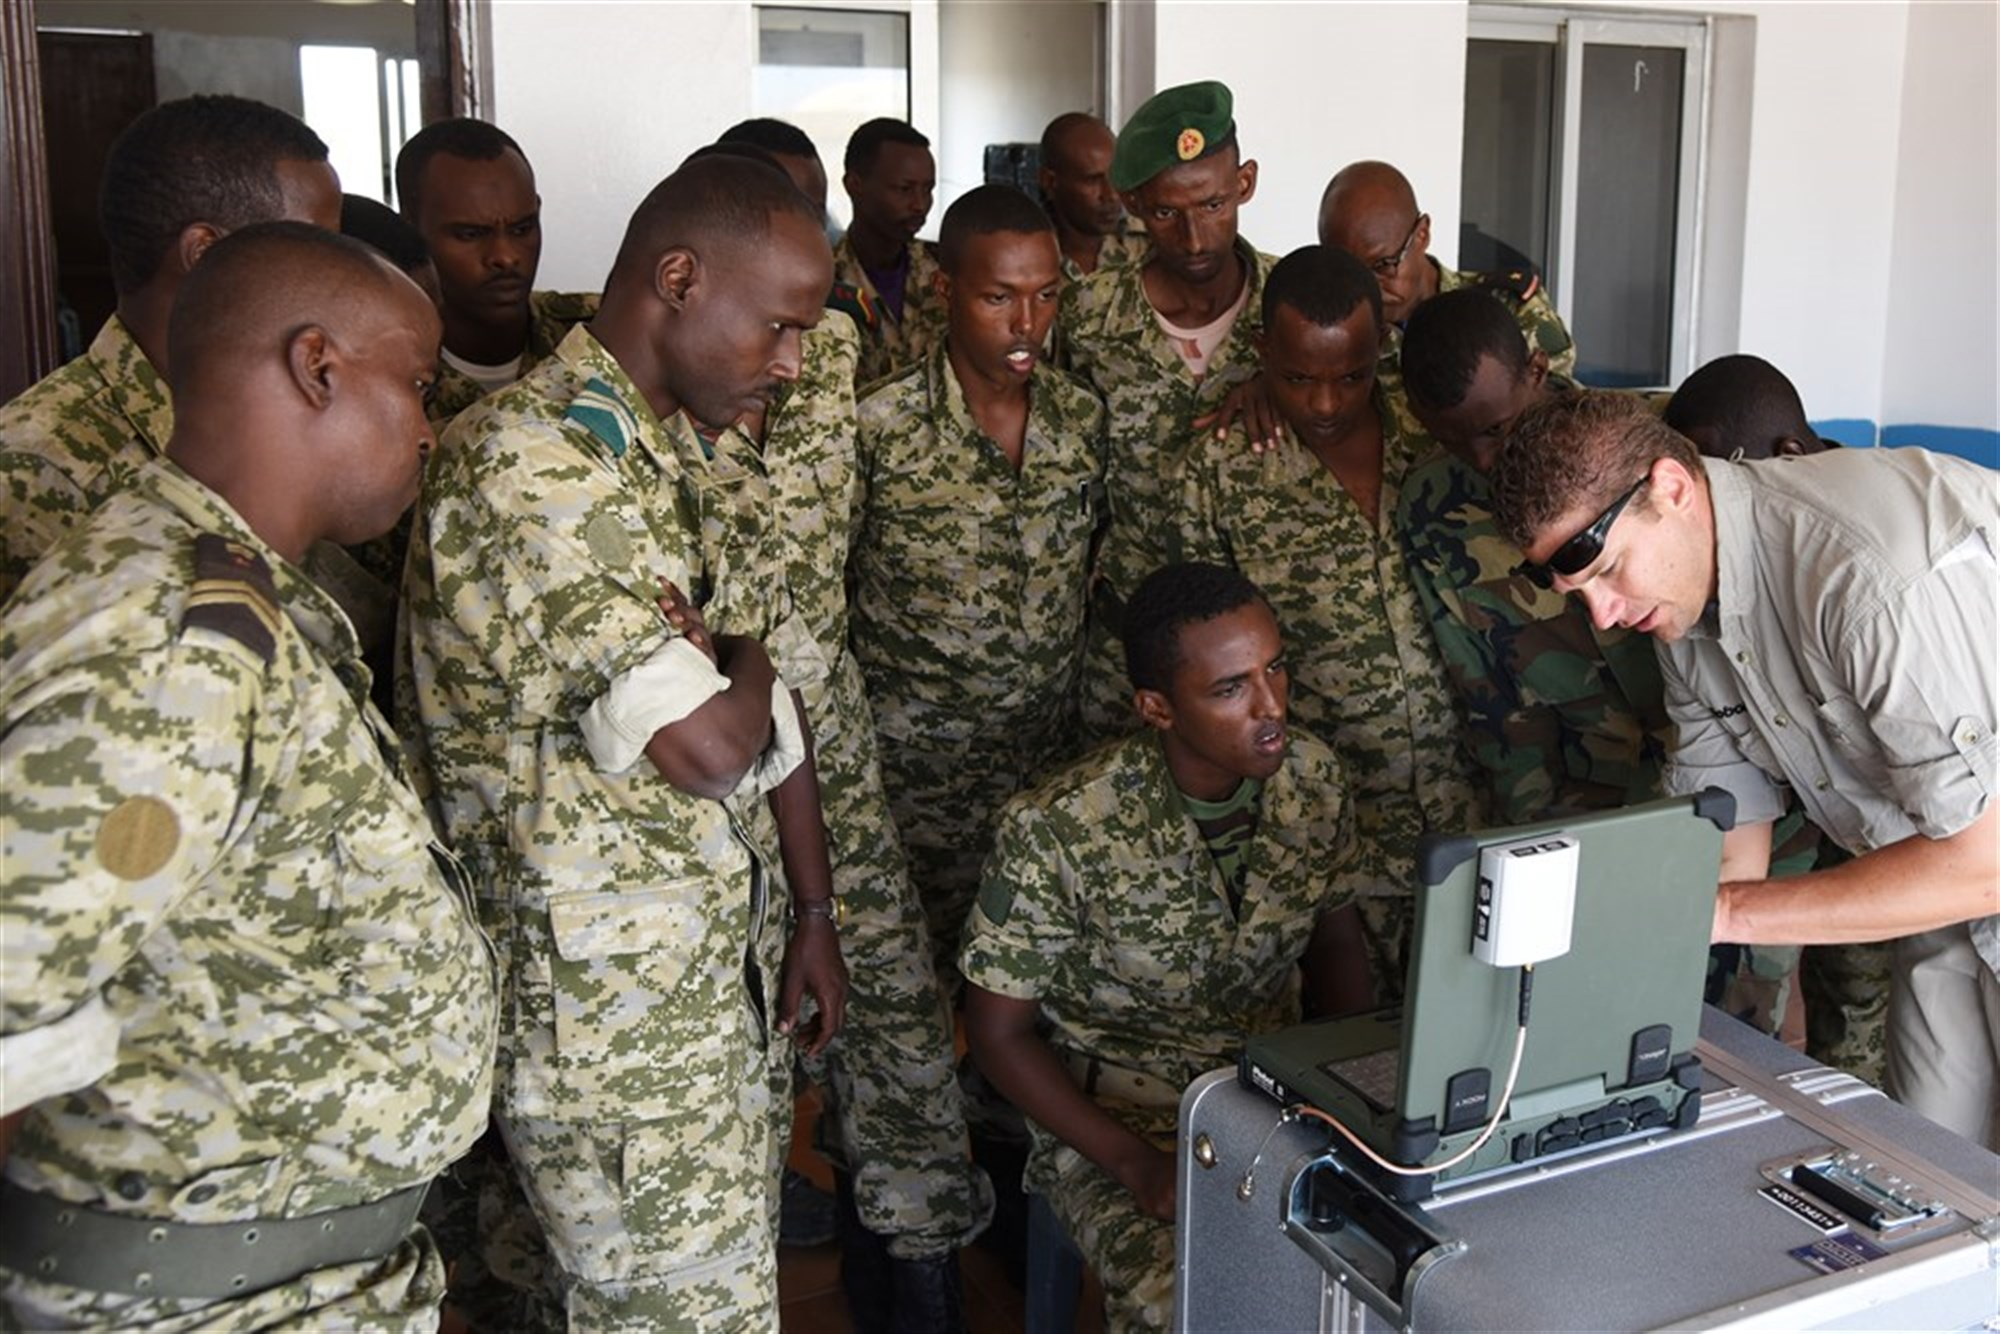 Joseph Brunette, iRobot instructor, shows Djibouti Armed Forces (FAD) service members how to use a computer to monitor what the 510 Packbot is searching. The robot searches for, and dispose of, explosive weapons.